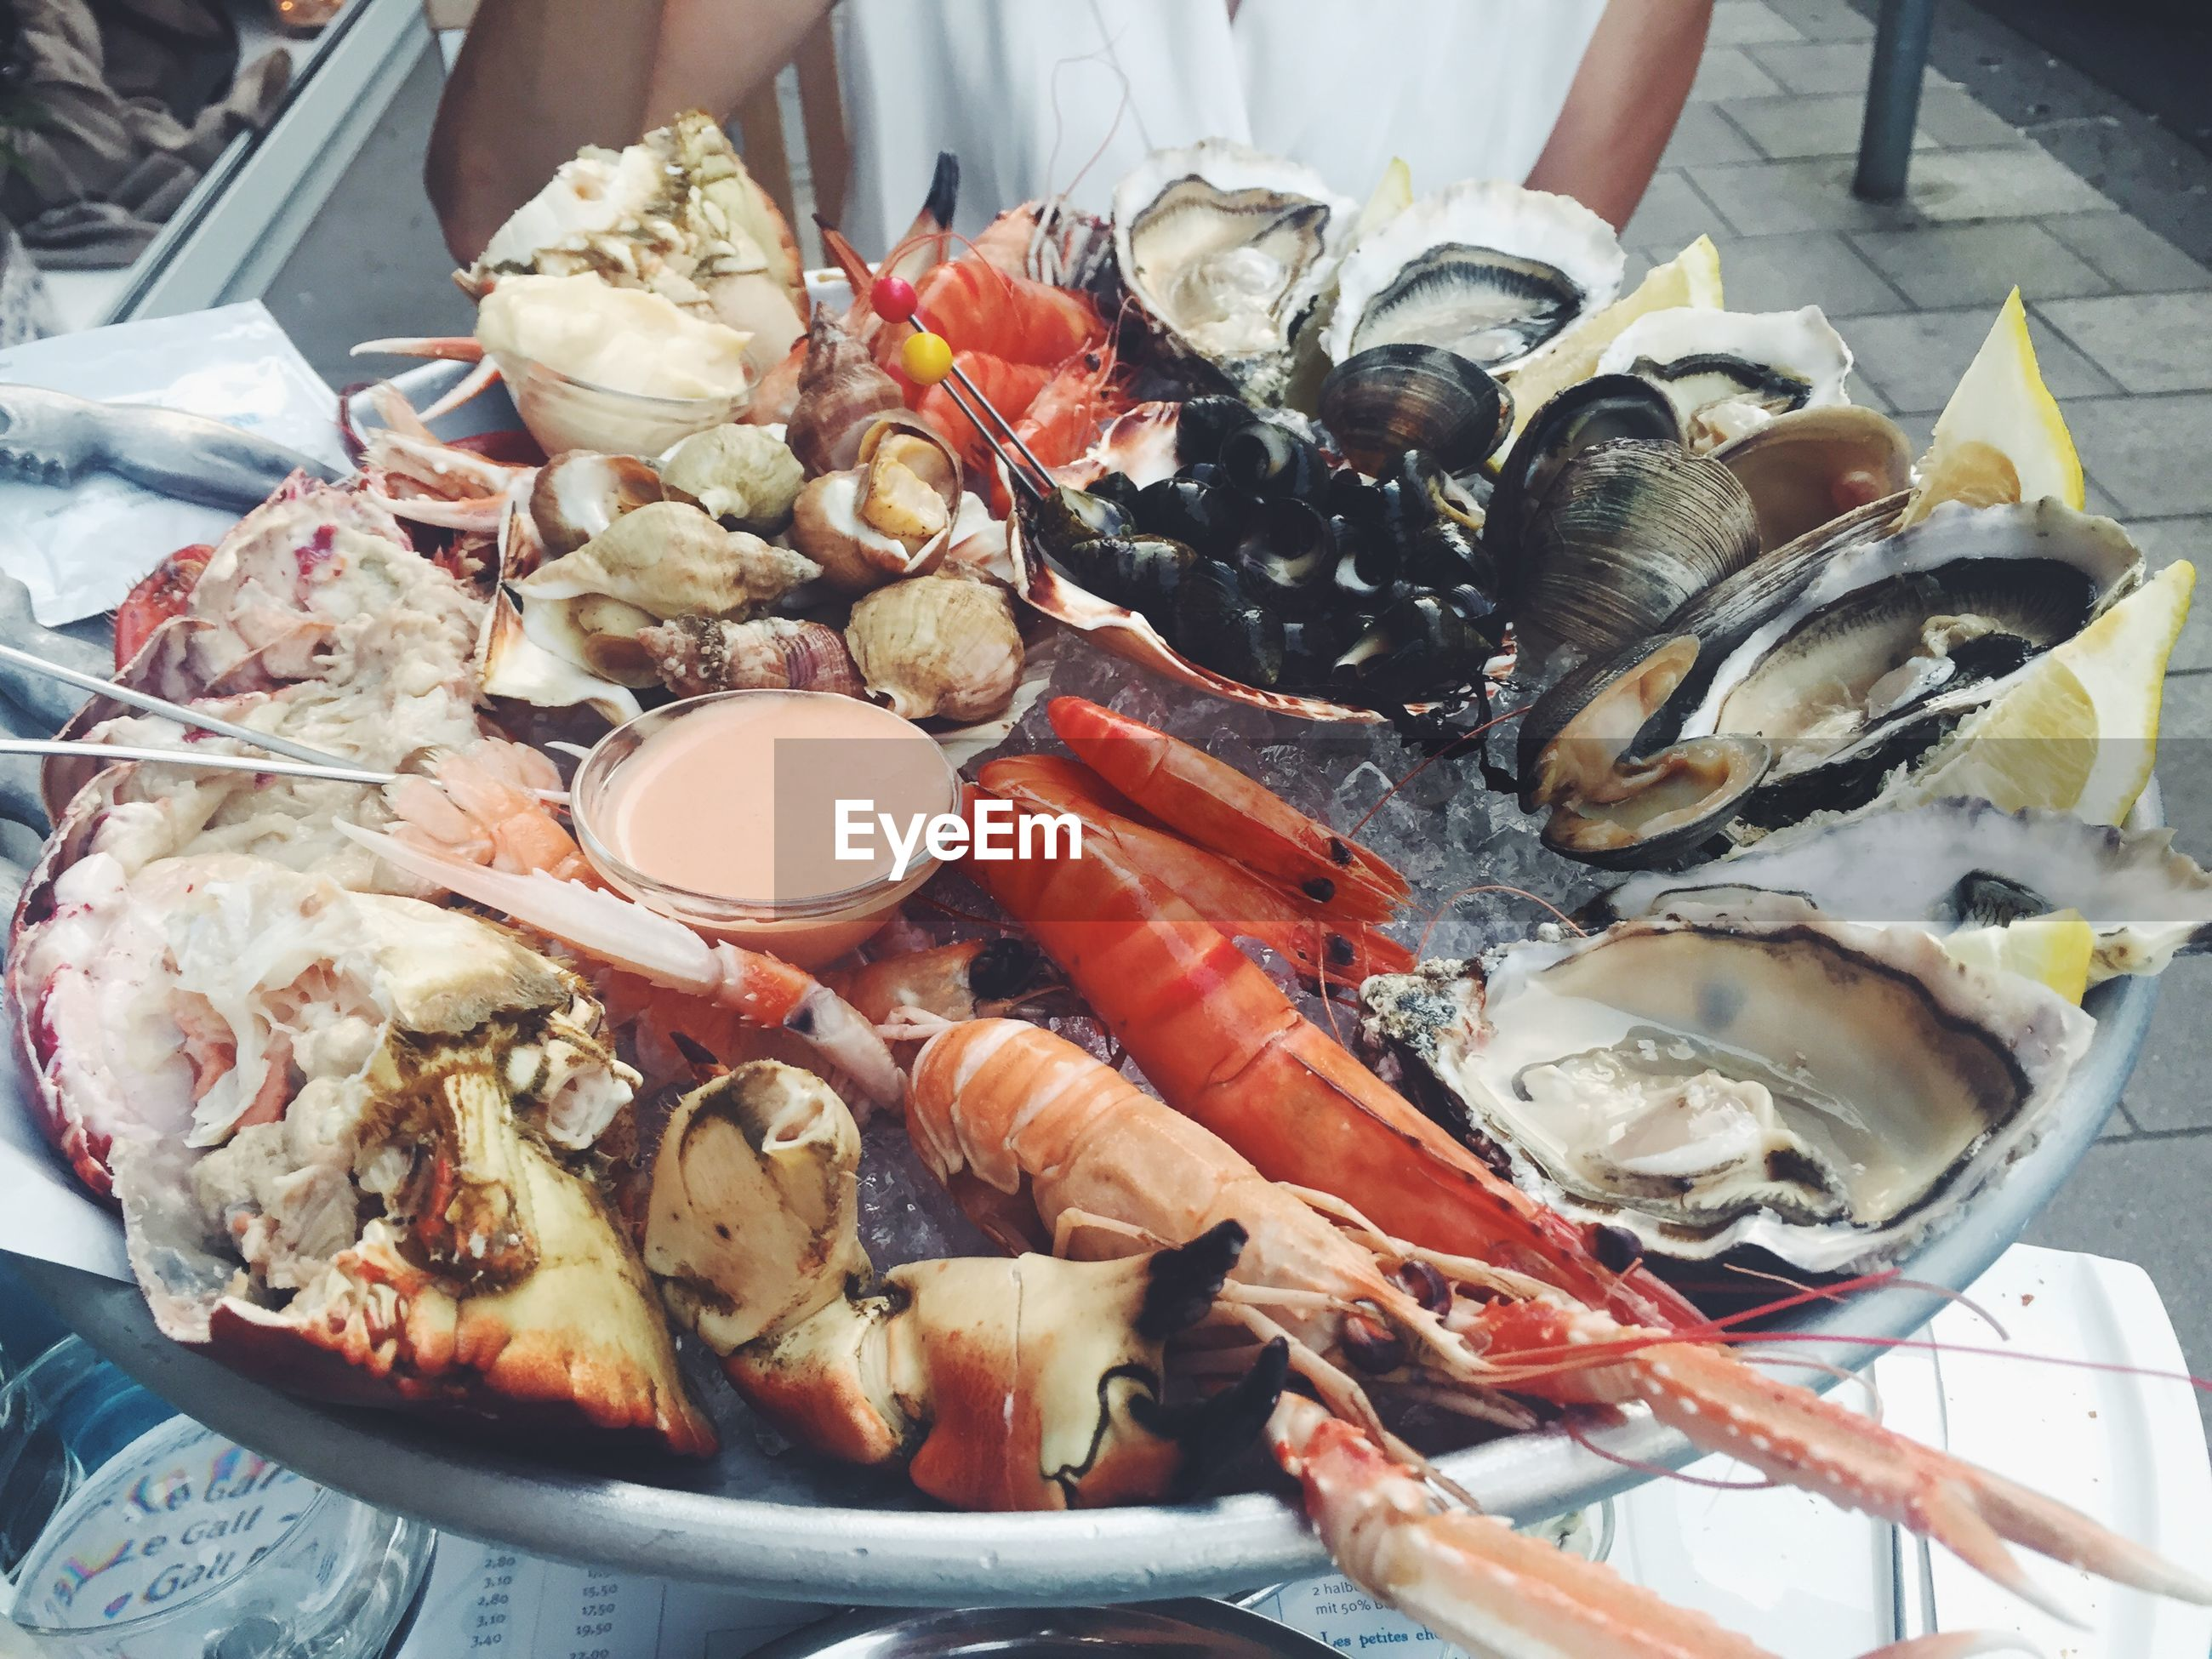 Midsection of woman sitting in front of seafood on plate